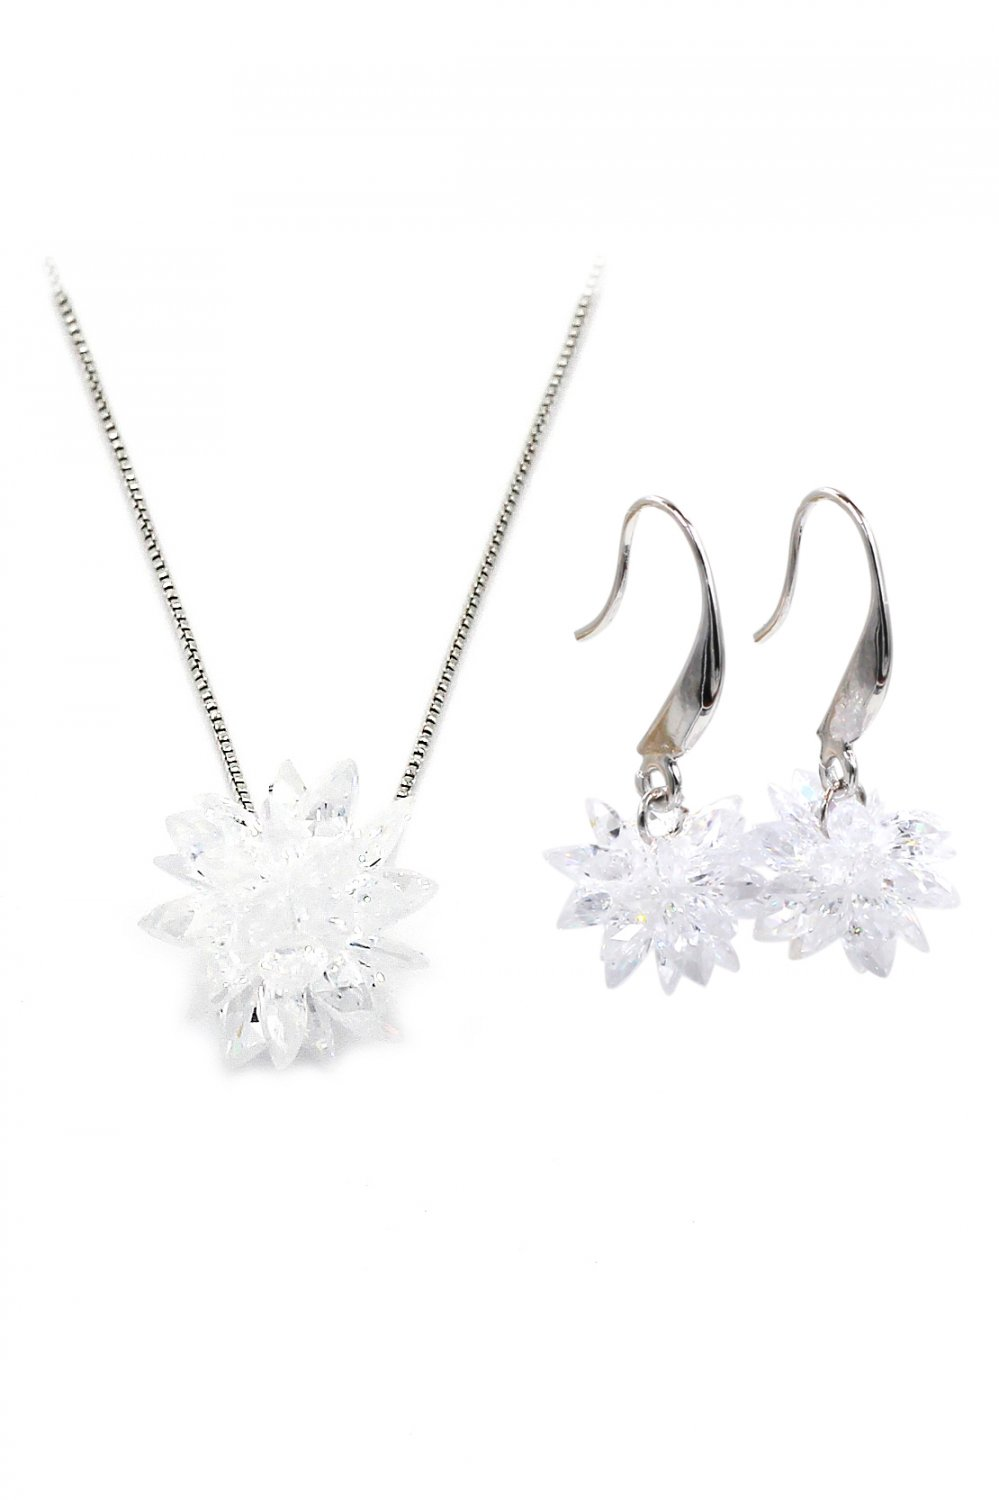 Fashion snowflake silver necklace pendant earrings set